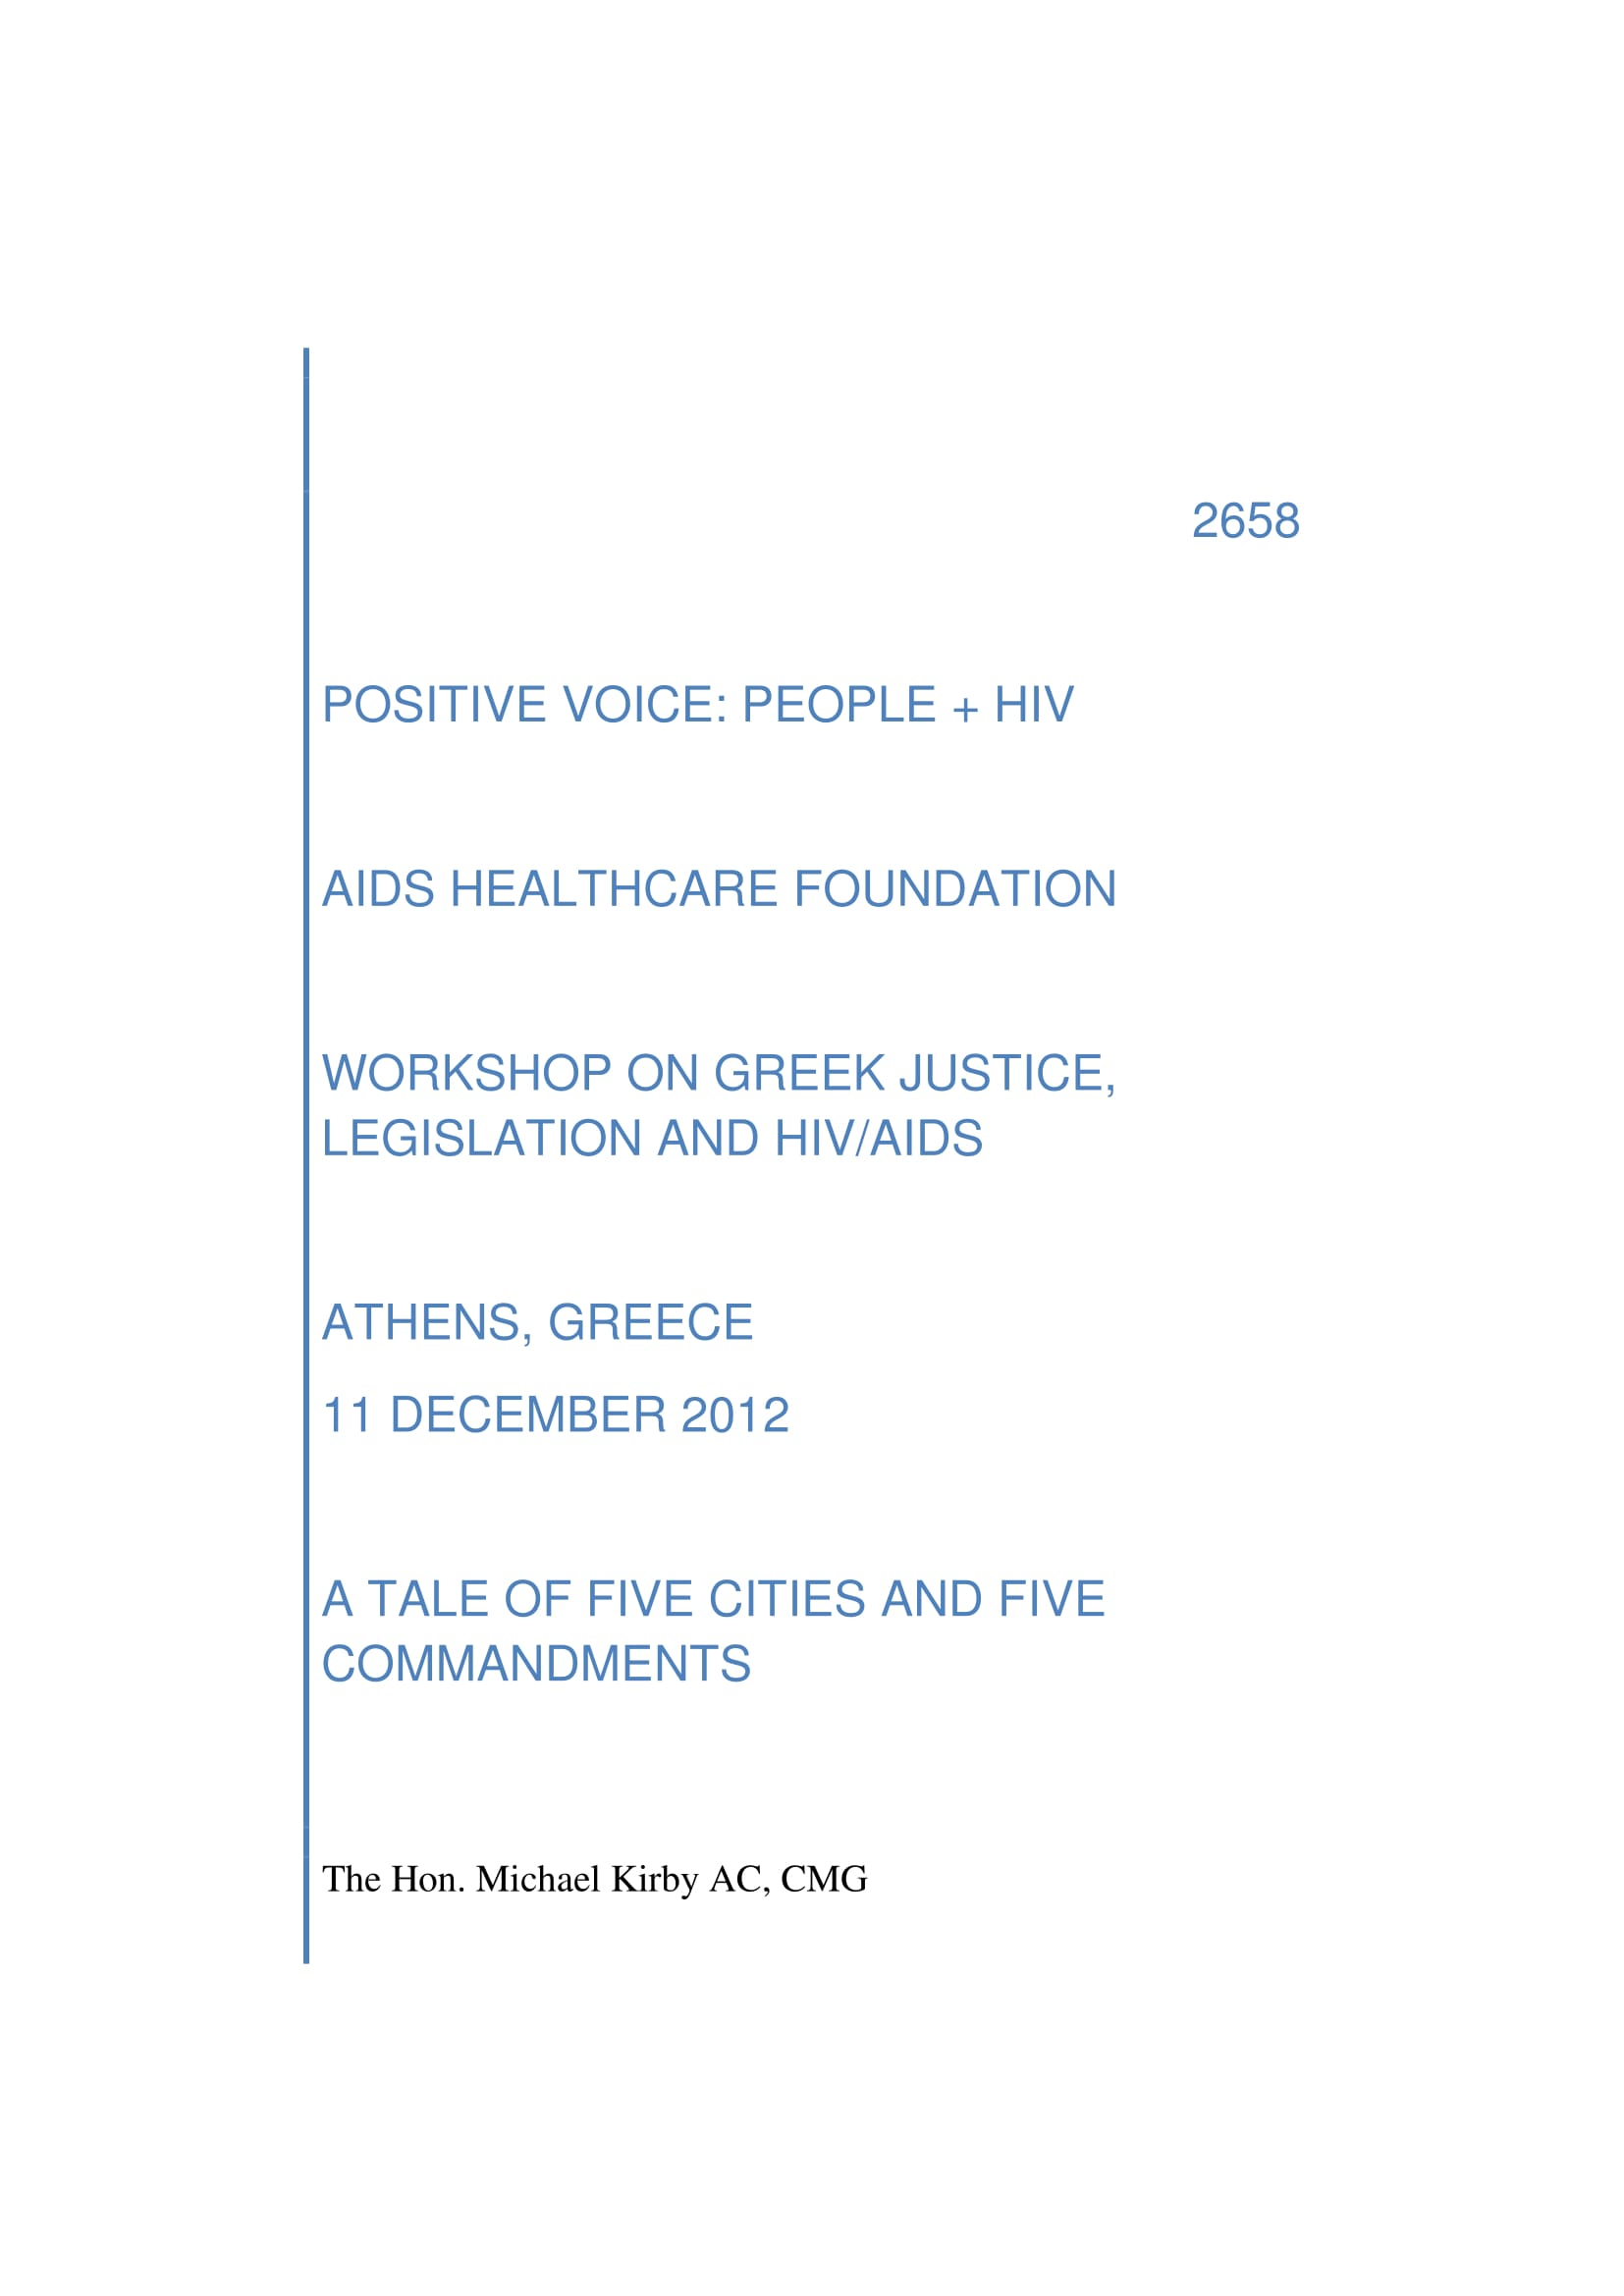 Speech at the Workshop on Greek Justice, Legislation and HIV/AIDS, 11 December 2012